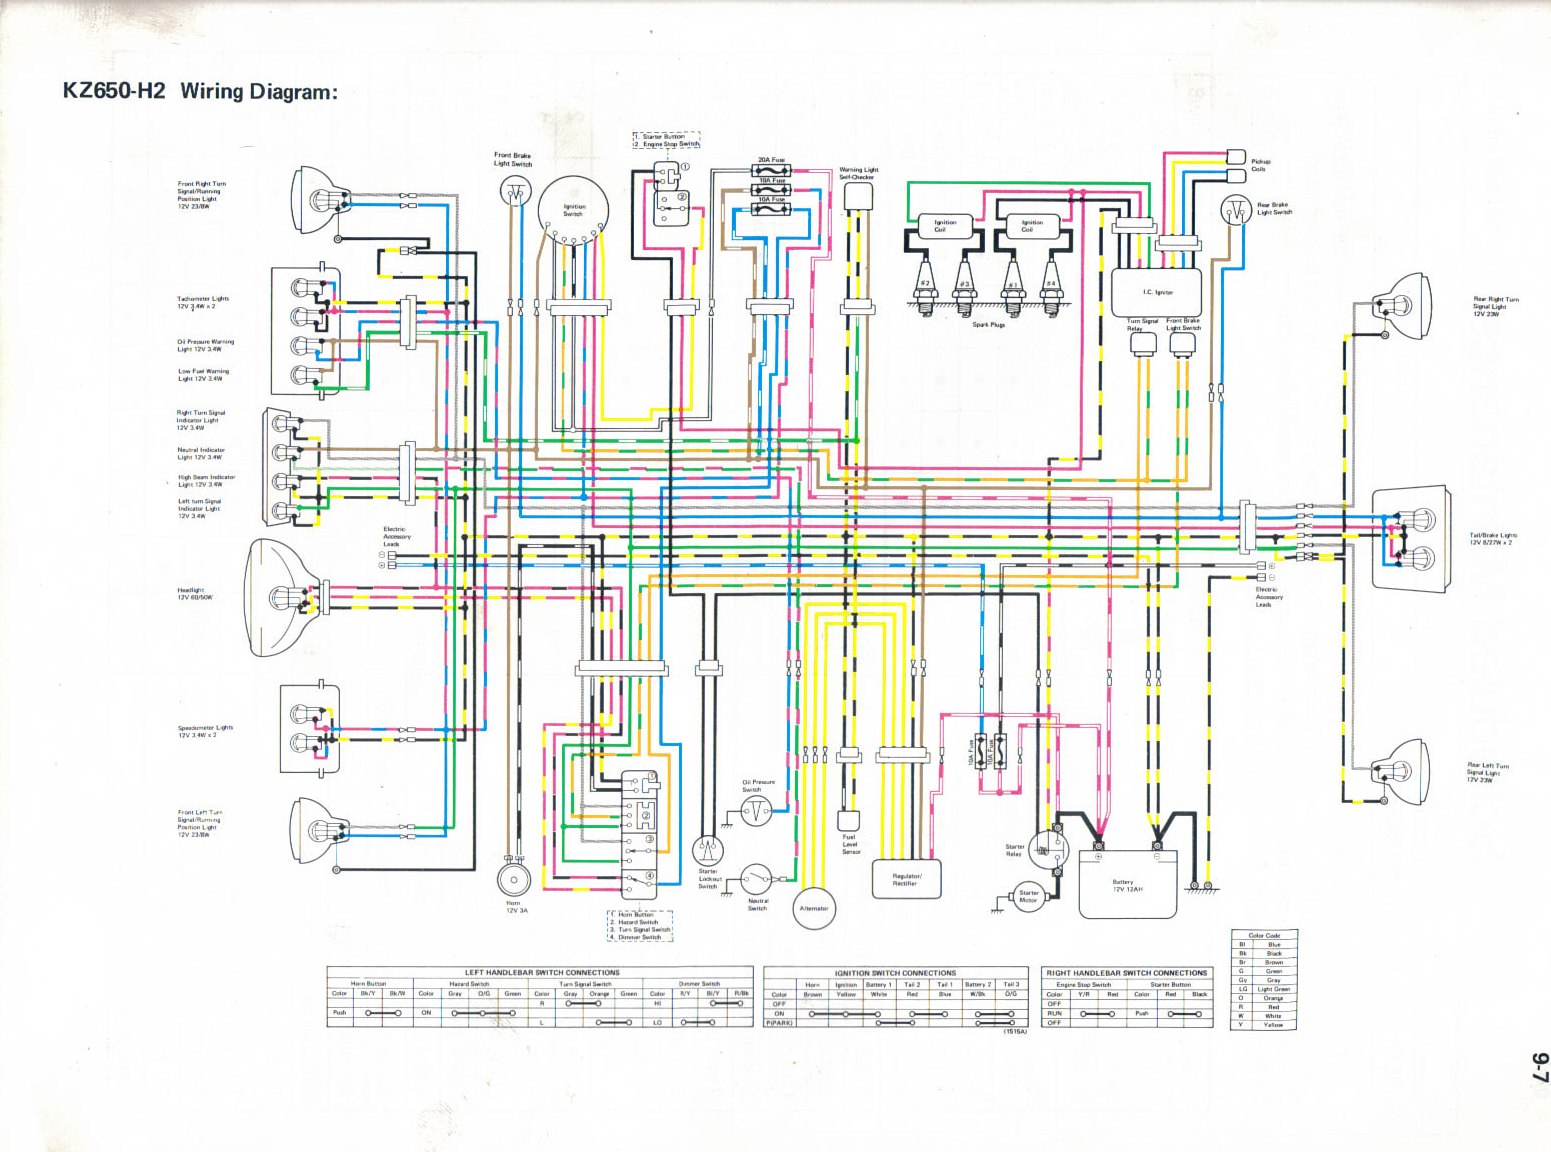 KZ650 H2 kawasaki h2 wiring diagram kawasaki wiring diagrams instruction ex500 wiring diagram at cos-gaming.co